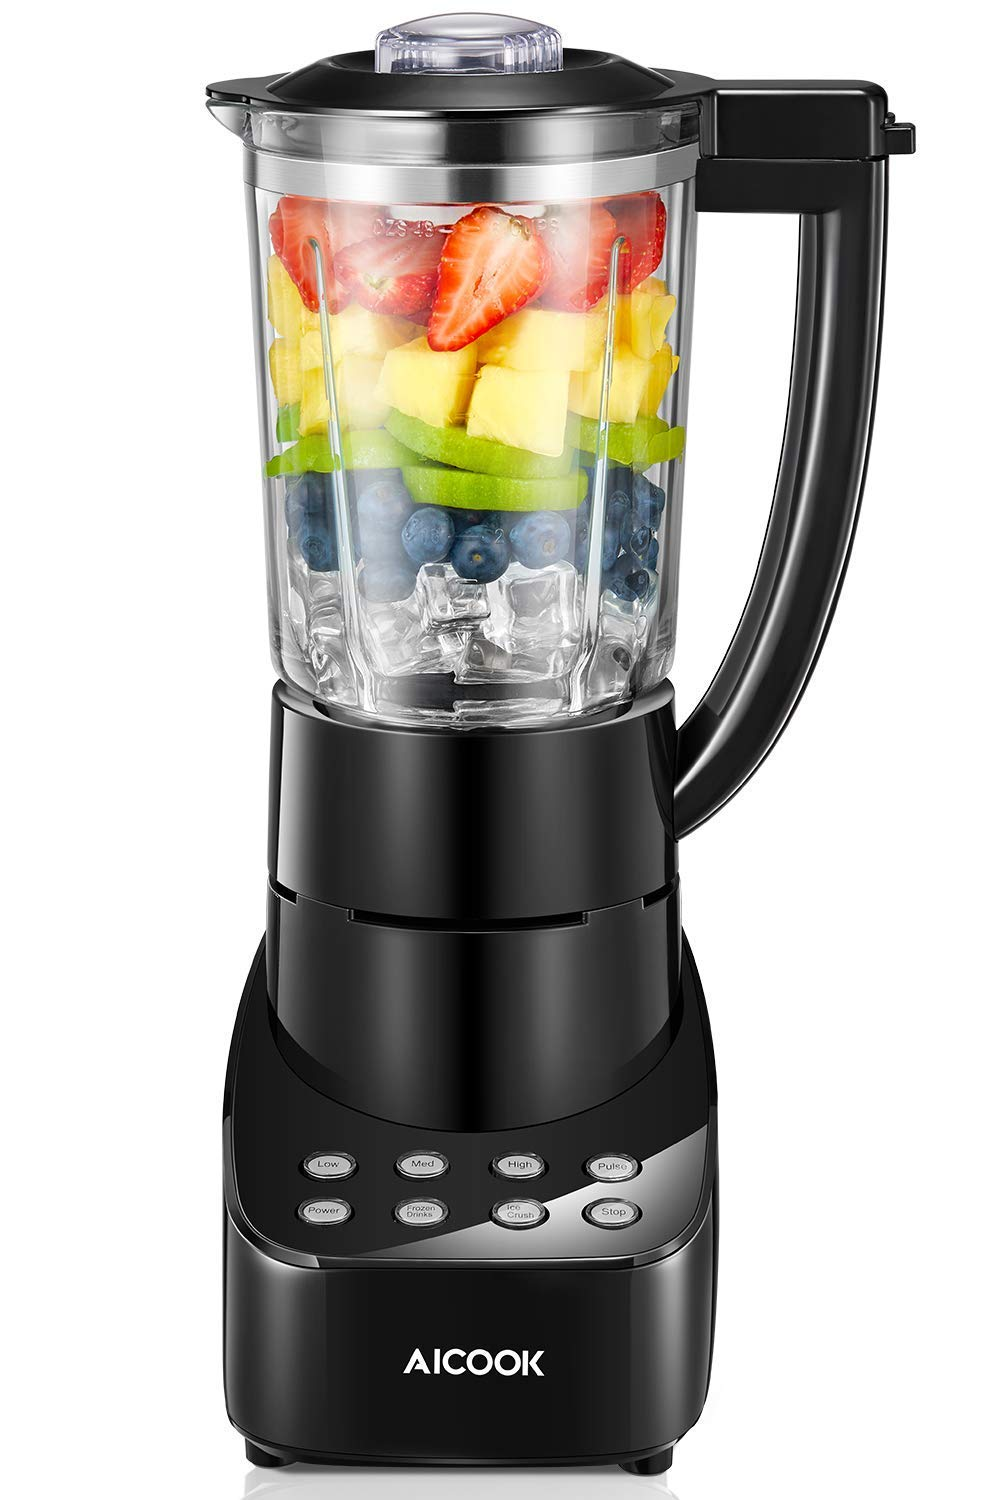 Blender 5 Speed Smoothie Blender Make Smoothies, Ice and Frozen Fruit Drinks, 48oz Glass Jar Smoothie Maker with 700W and Stainless Steel Blade for Efficient Crush, Dishwasher Safe by AICOOK